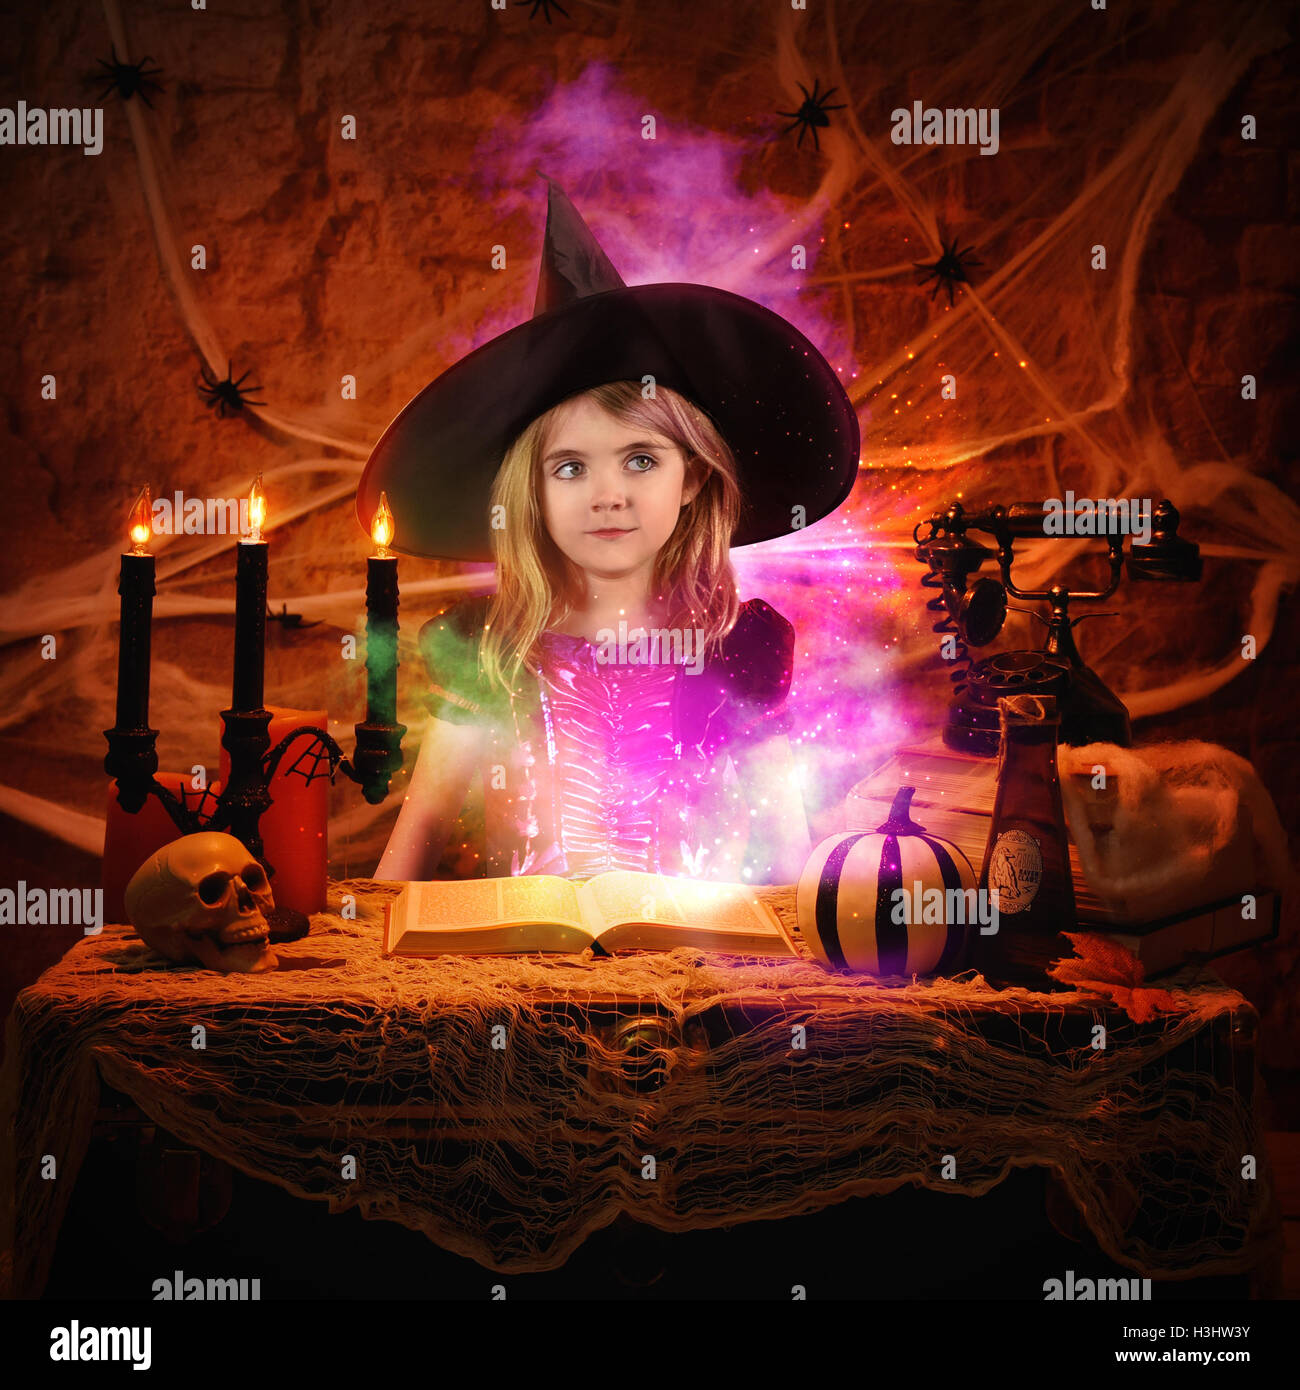 Magic Spell Book Stock Photos & Magic Spell Book Stock Images - Alamy